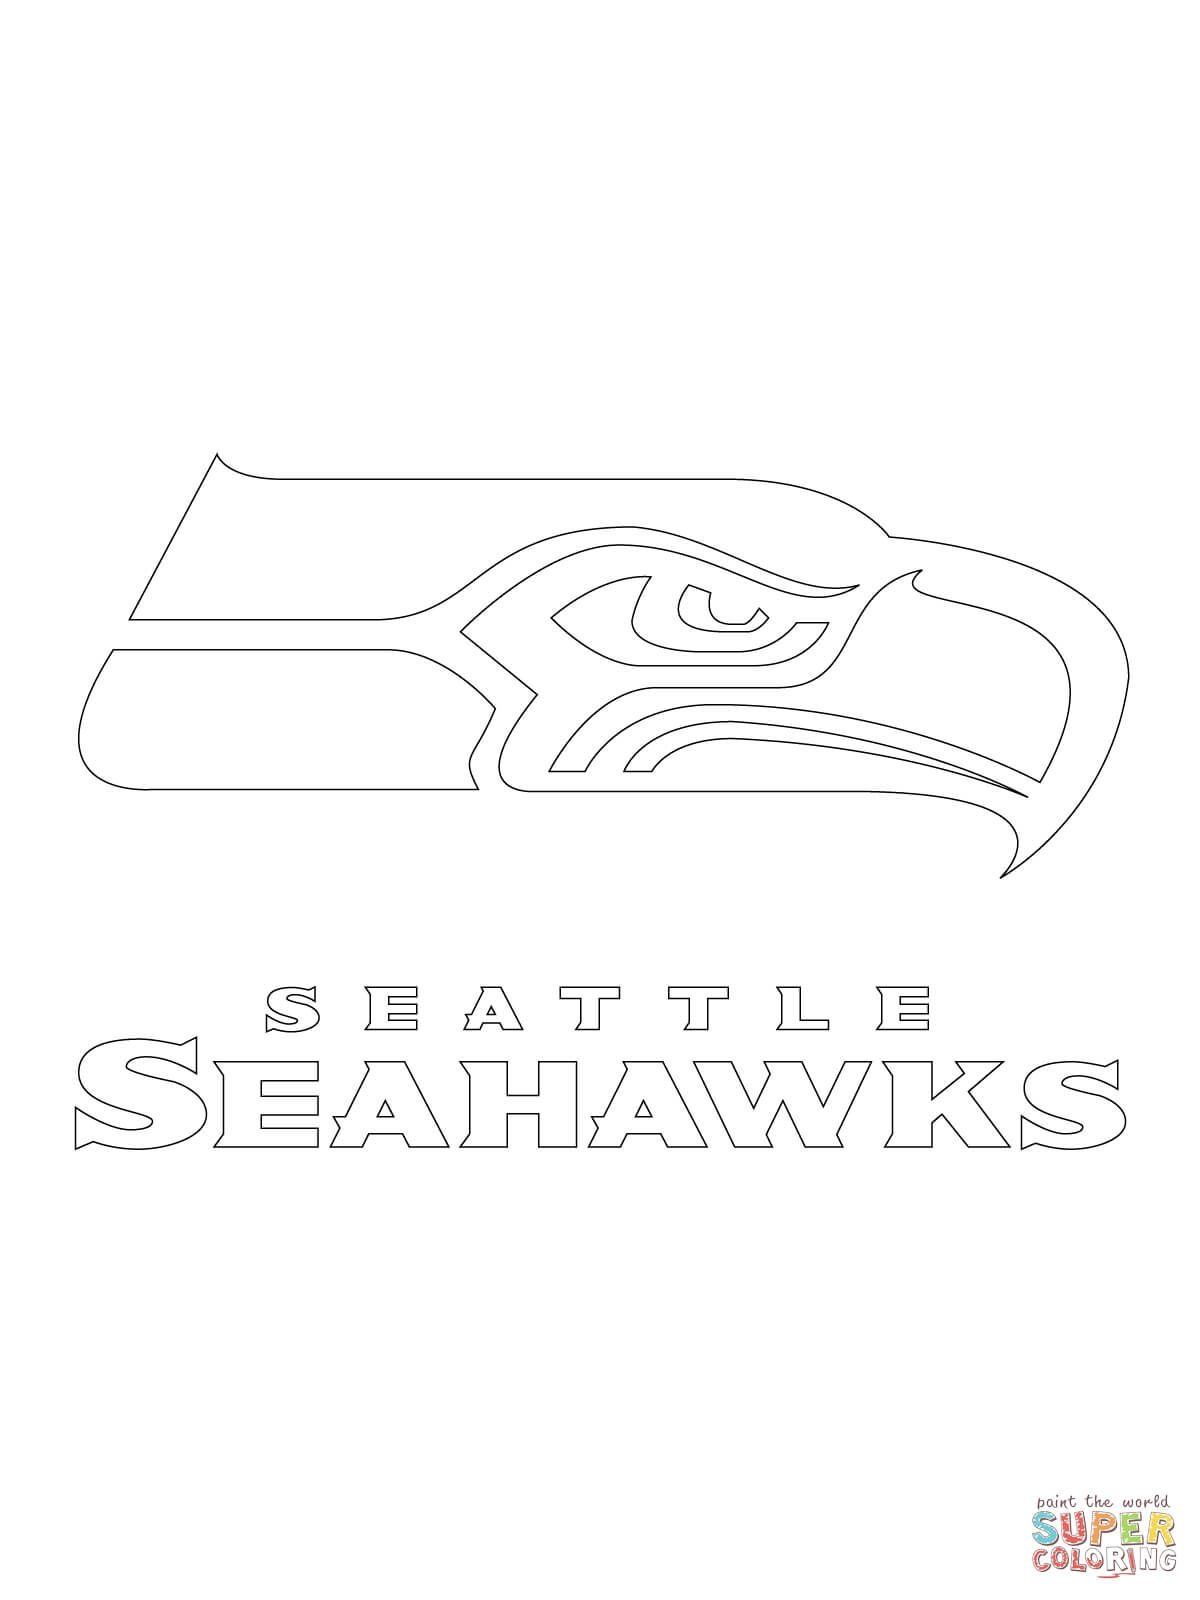 Seattle Seahawks Logo | Super Coloring | Books Worth Reading - Free Printable Seahawks Coloring Pages